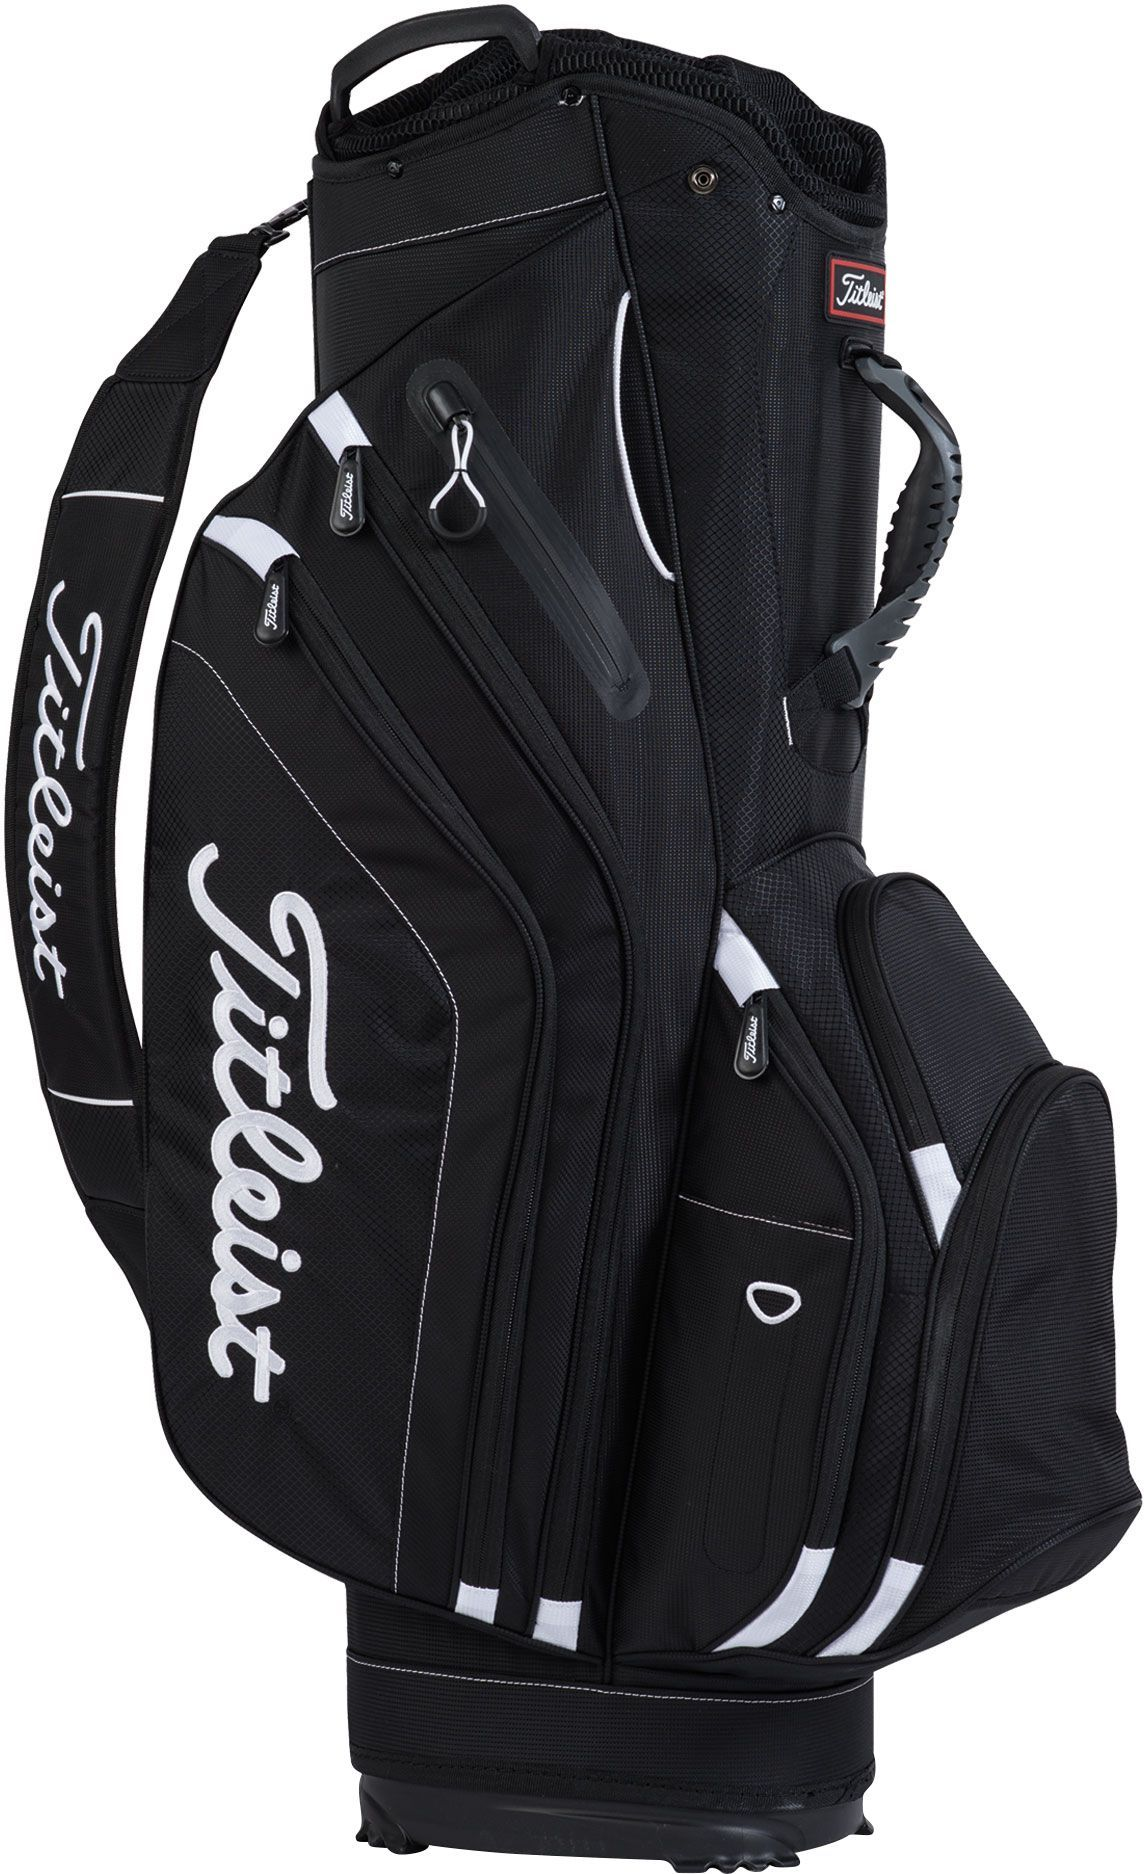 Golf Bags For Sale Ebay | Brydens Xpress